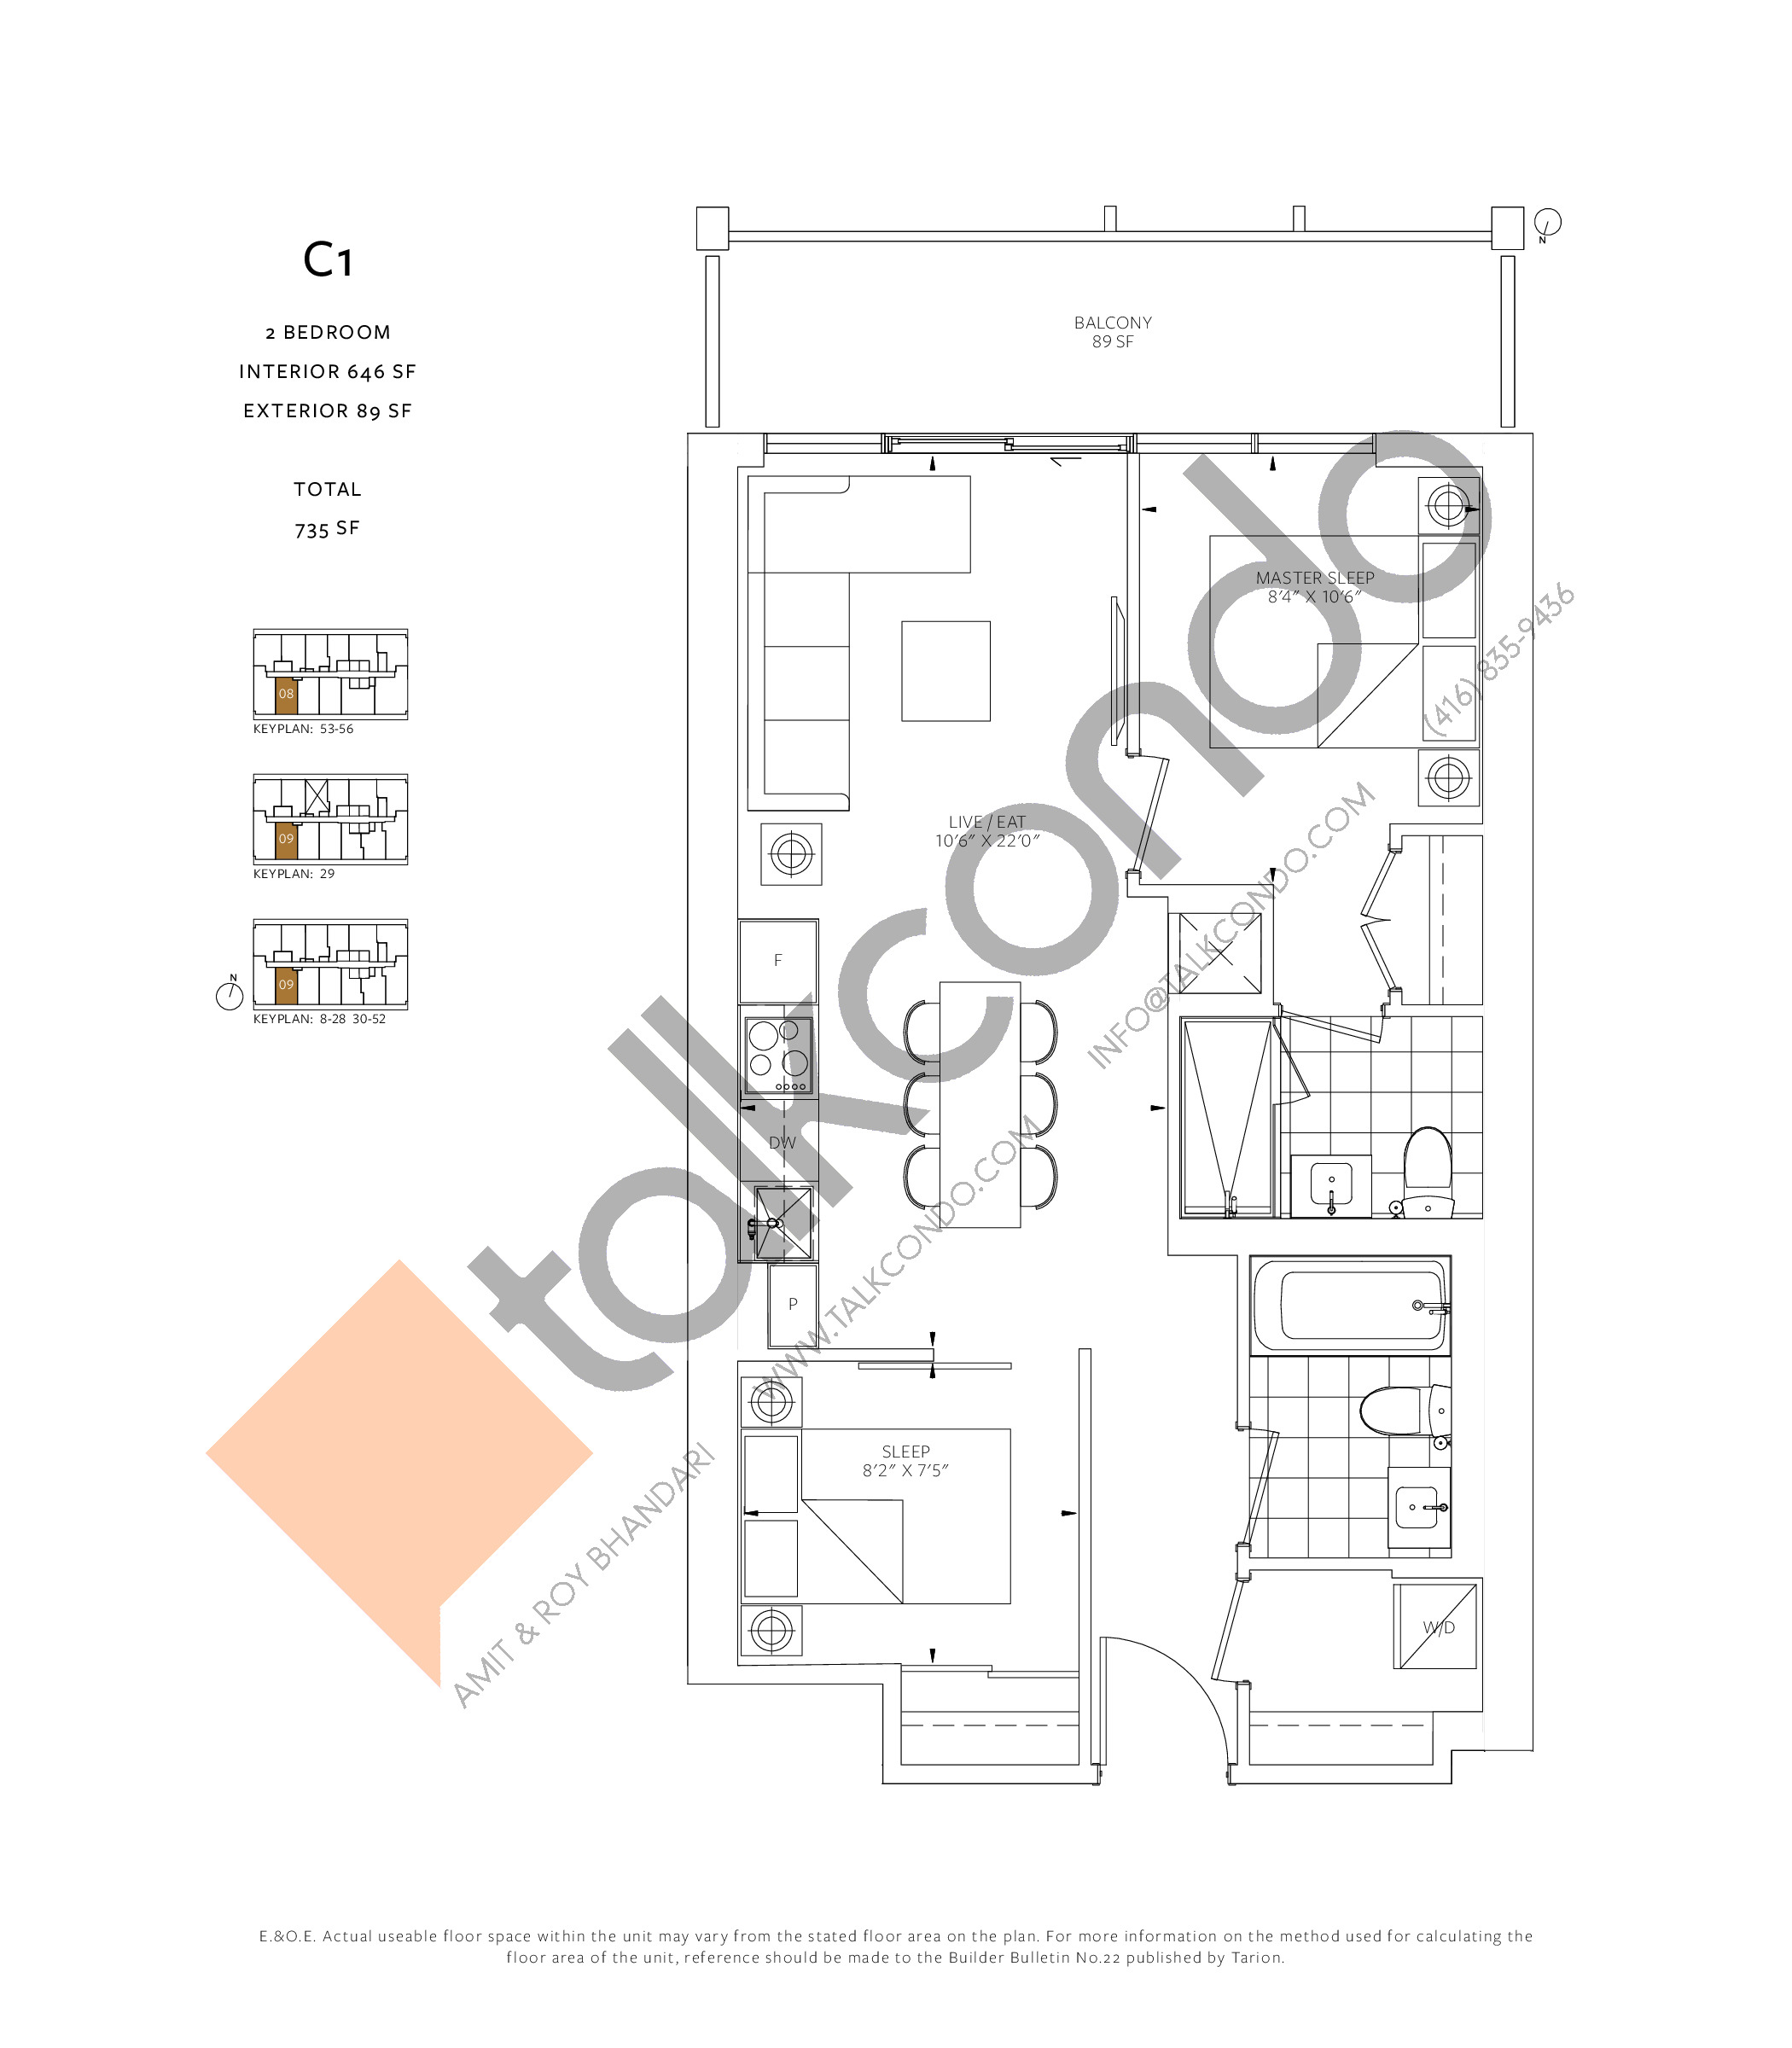 C1 Floor Plan at 88 Queen Condos - Phase 2 - 646 sq.ft